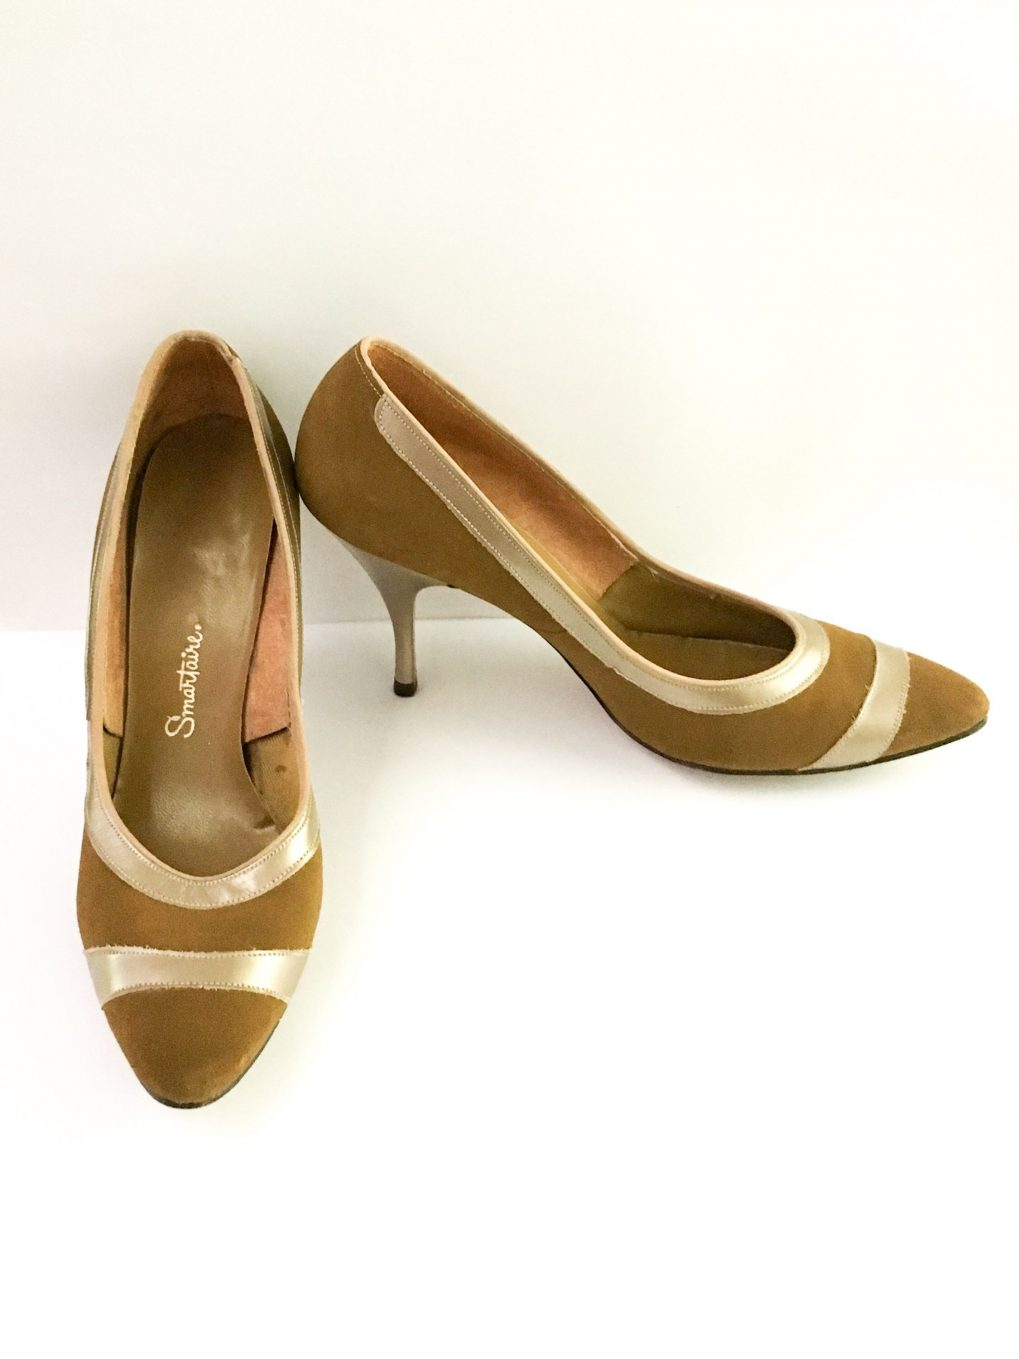 1950s Smartaire suede heels and matching purse